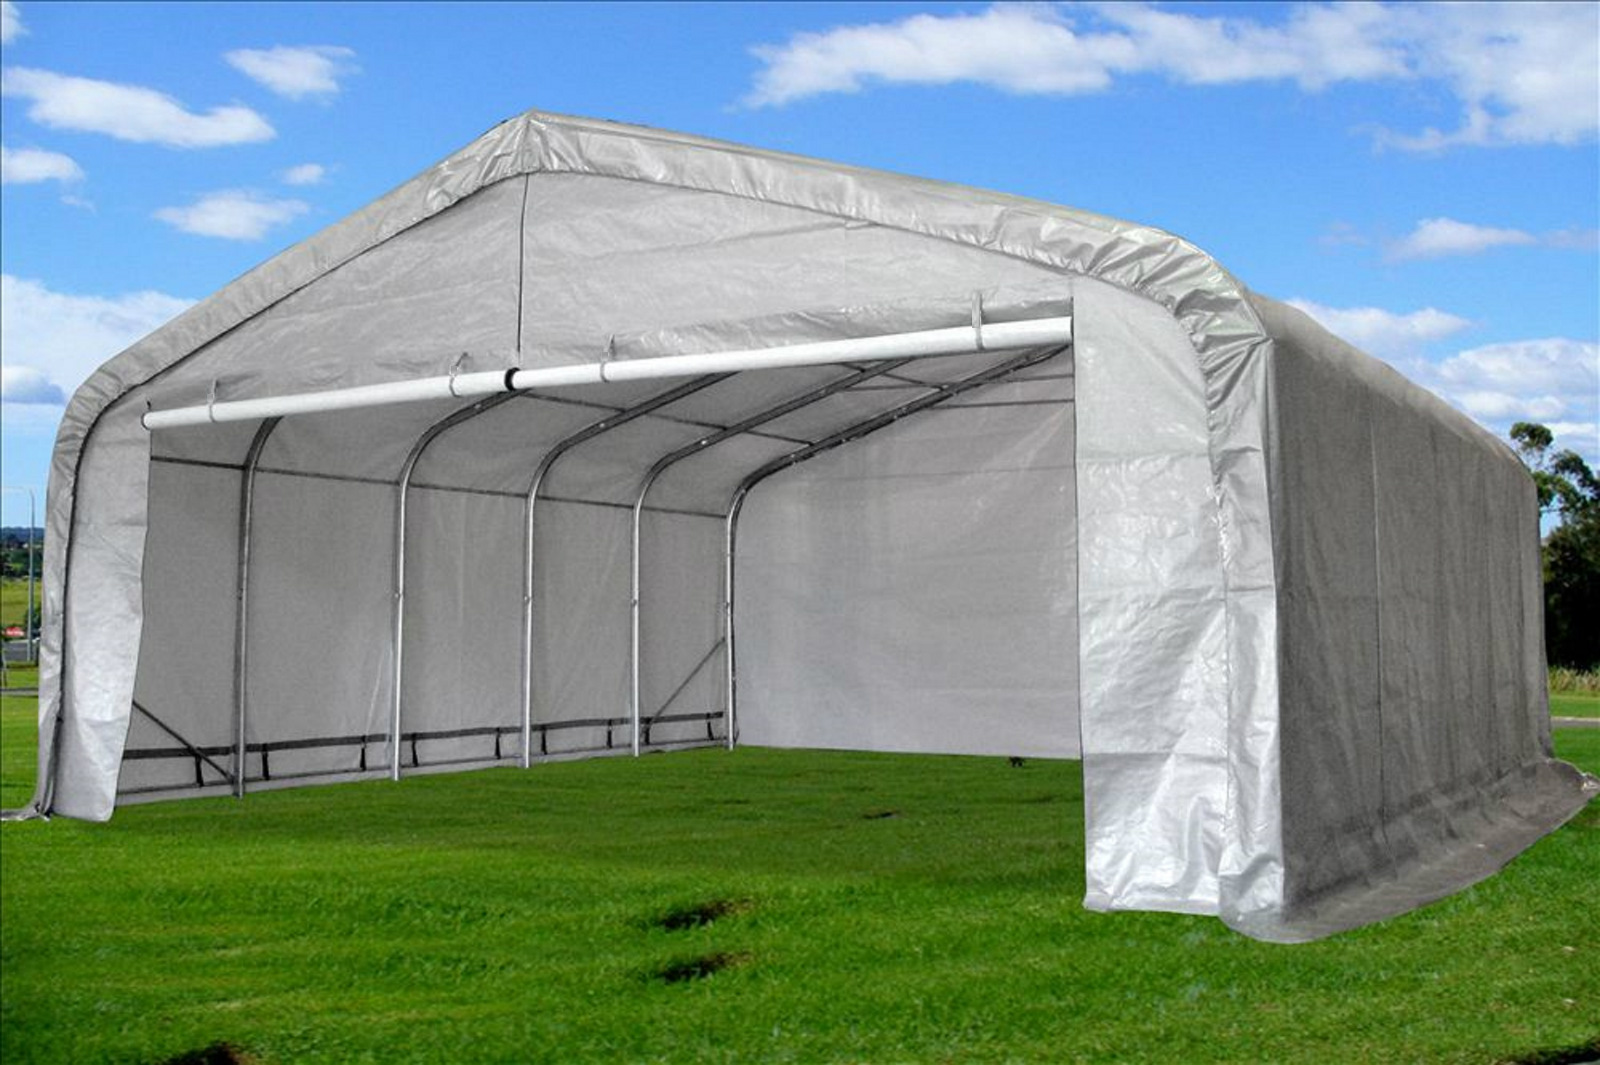 Aluminum Portable Canopy : Carport portable garage canopy